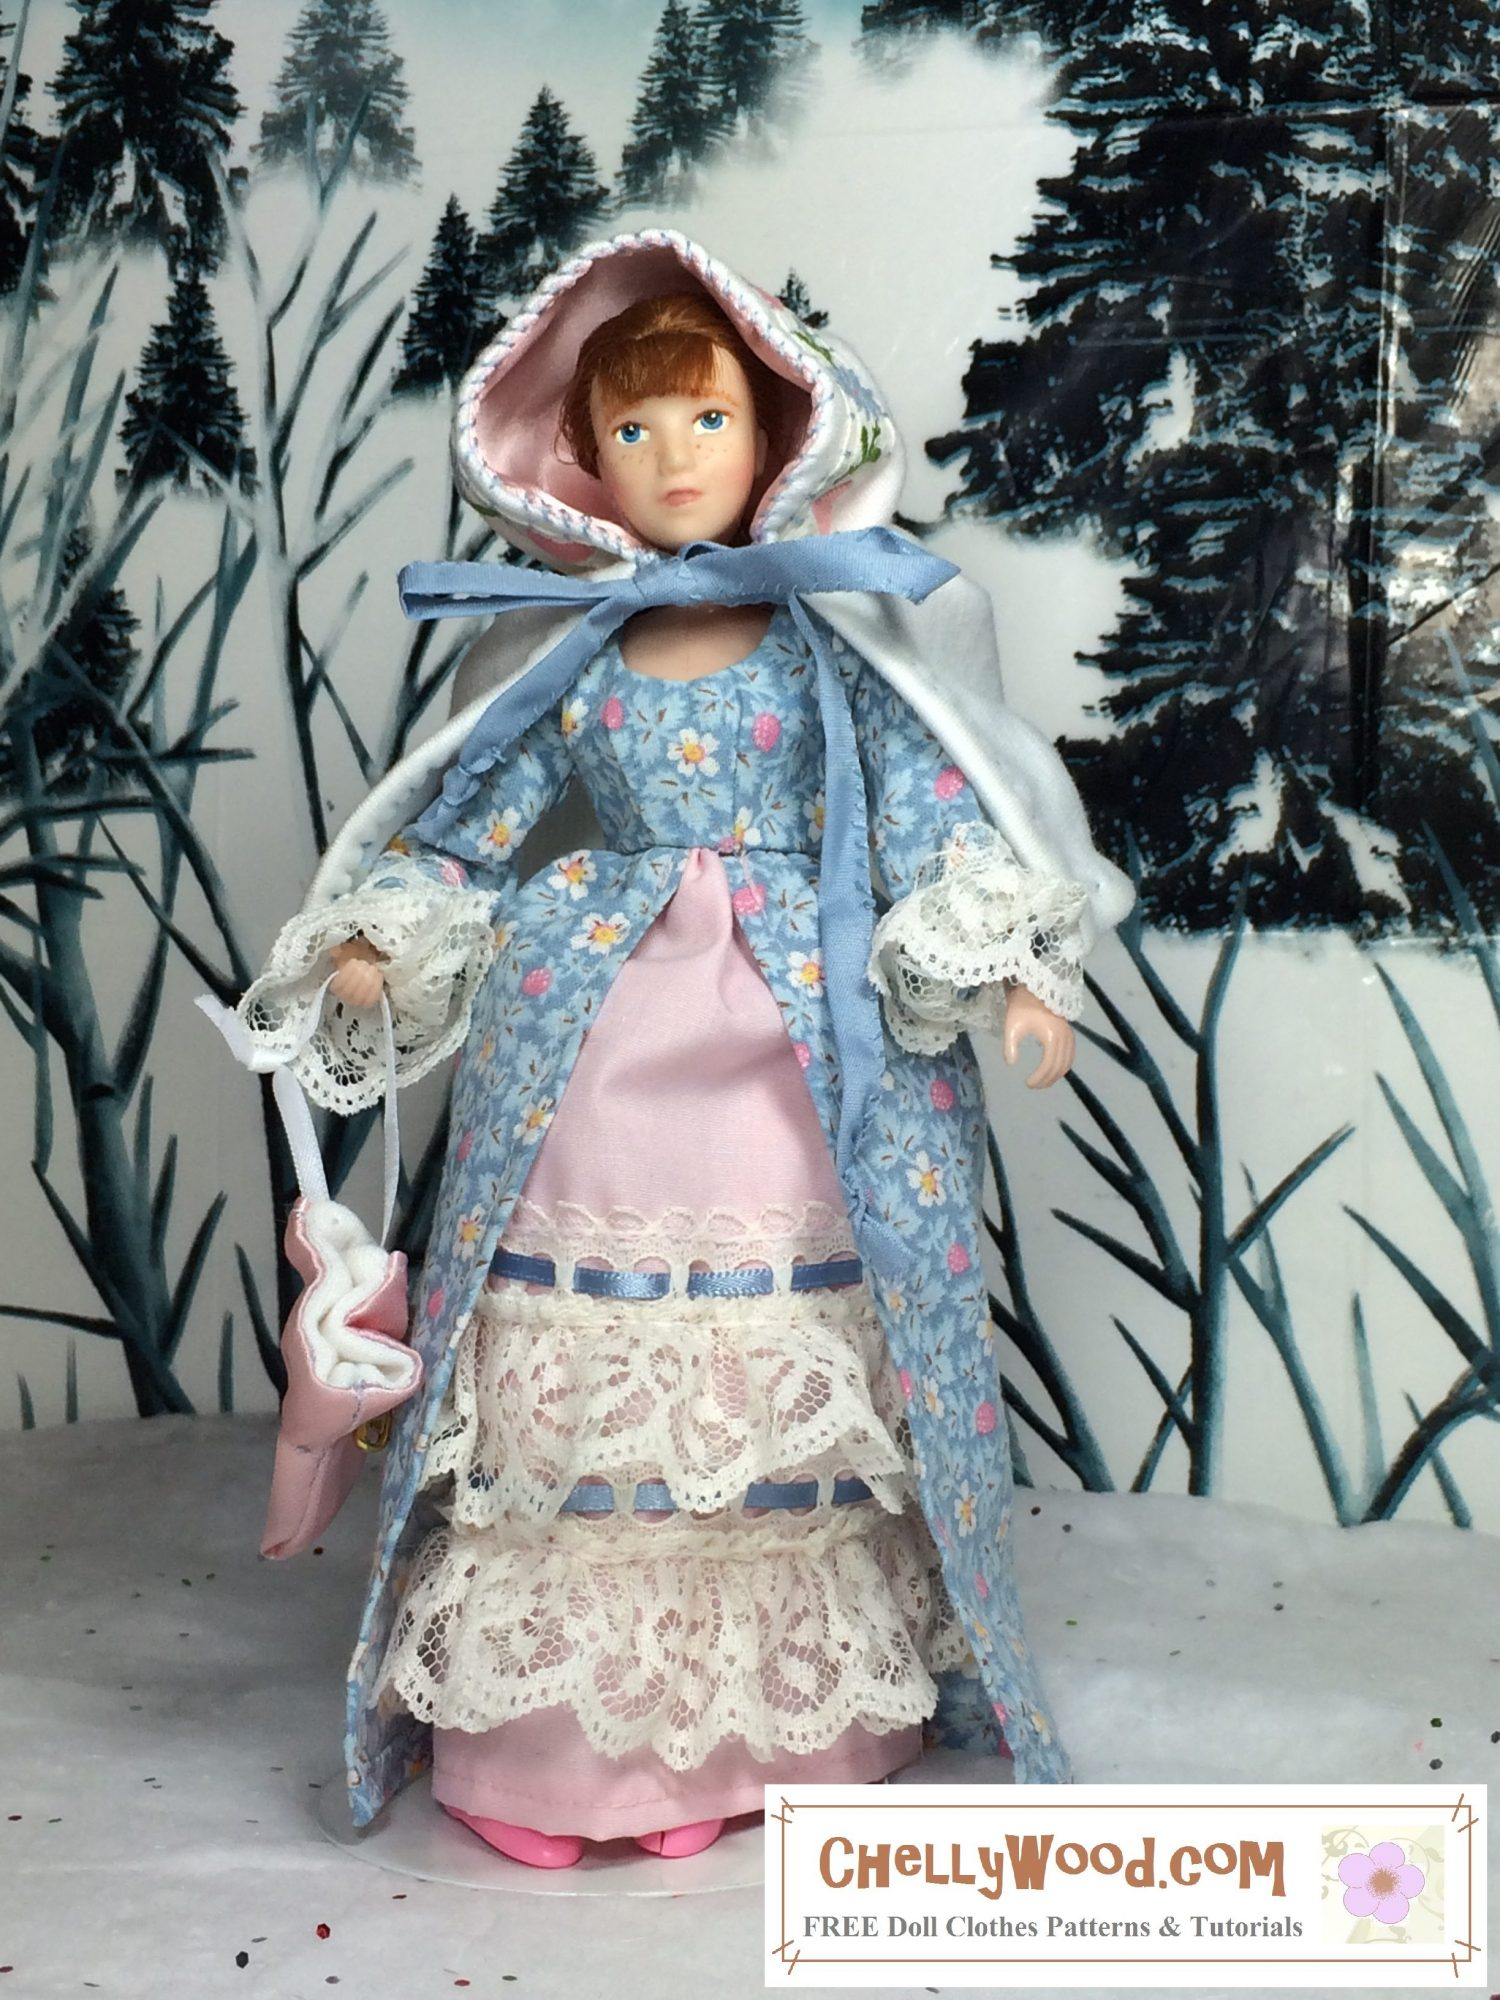 In a winter setting with snow all around, an 8 inch Breyer Rider figure with auburn red hair holds a pink satin drawstring purse. She wears a short riding hood style cape made of white cotton jersey fabric with pink satin hood lining and embroidery around the edge of the hood. She also wears a pretty blue dress with pink flowers and a pink petticoat that's trimmed in white lace and blue ribbons. We're not able to see it in the photo, but she also wears lacy bloomers under her petticoats. Her pink shoes peek out under the long skirt of her dress.